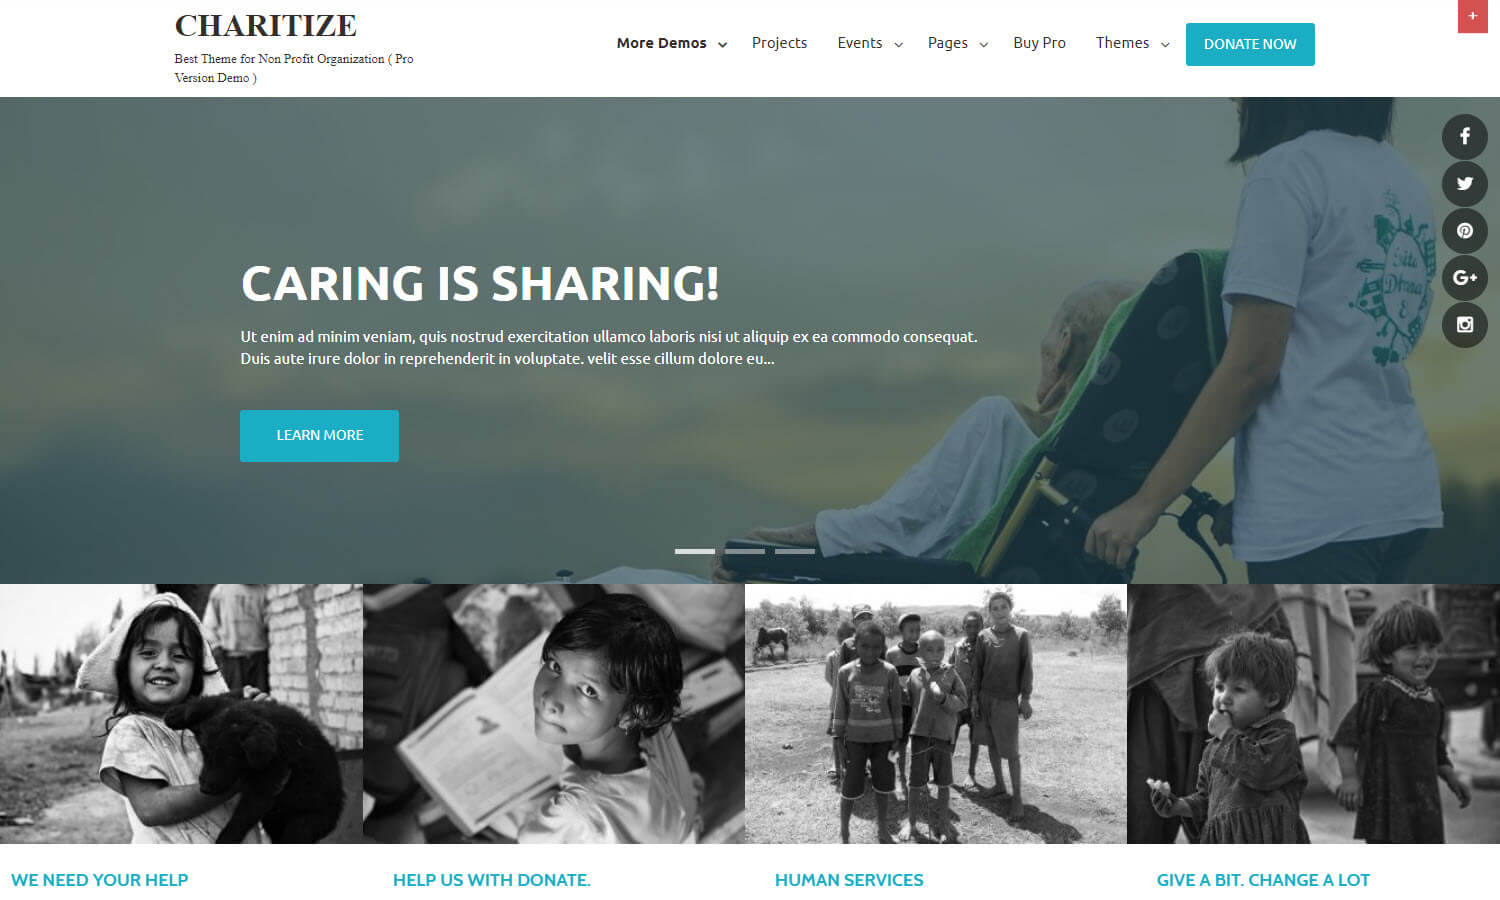 Charitize screenshot